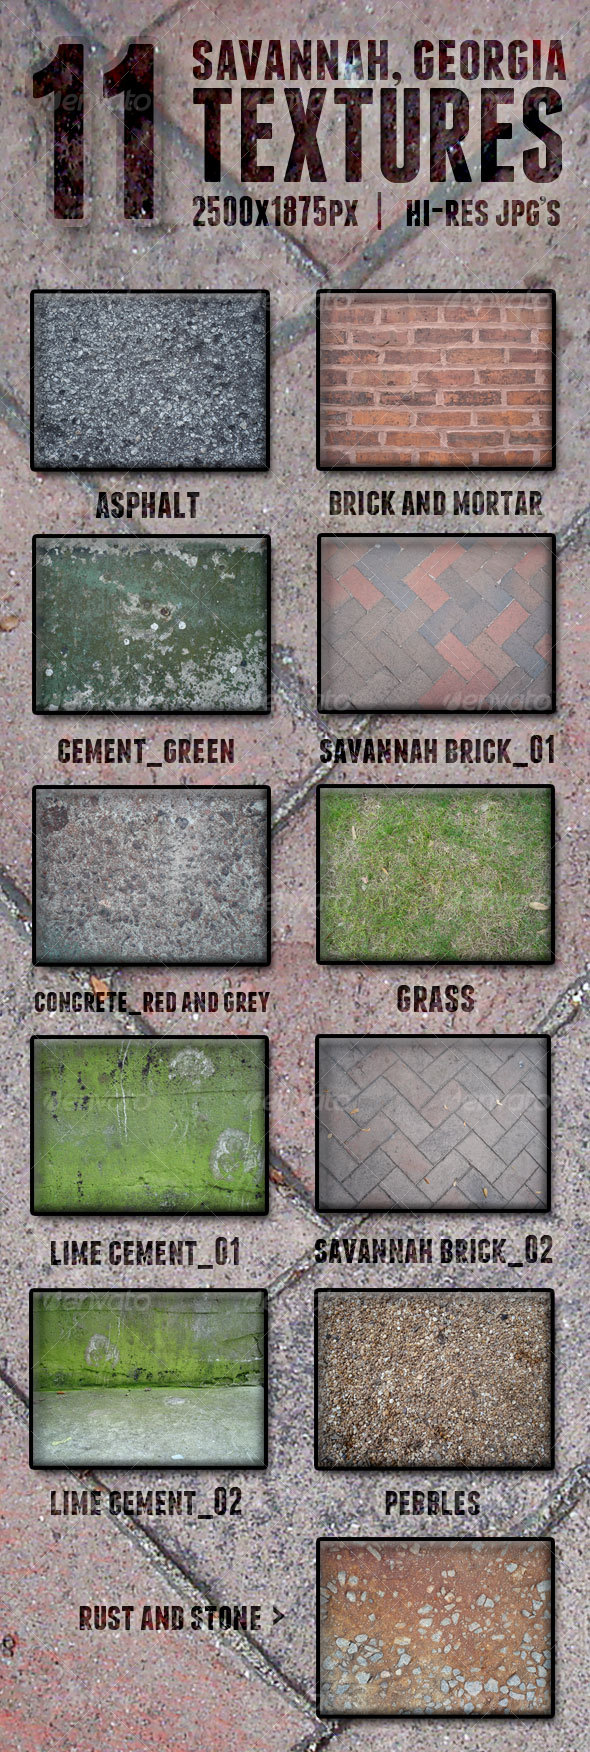 Savannah Textures - Miscellaneous Textures